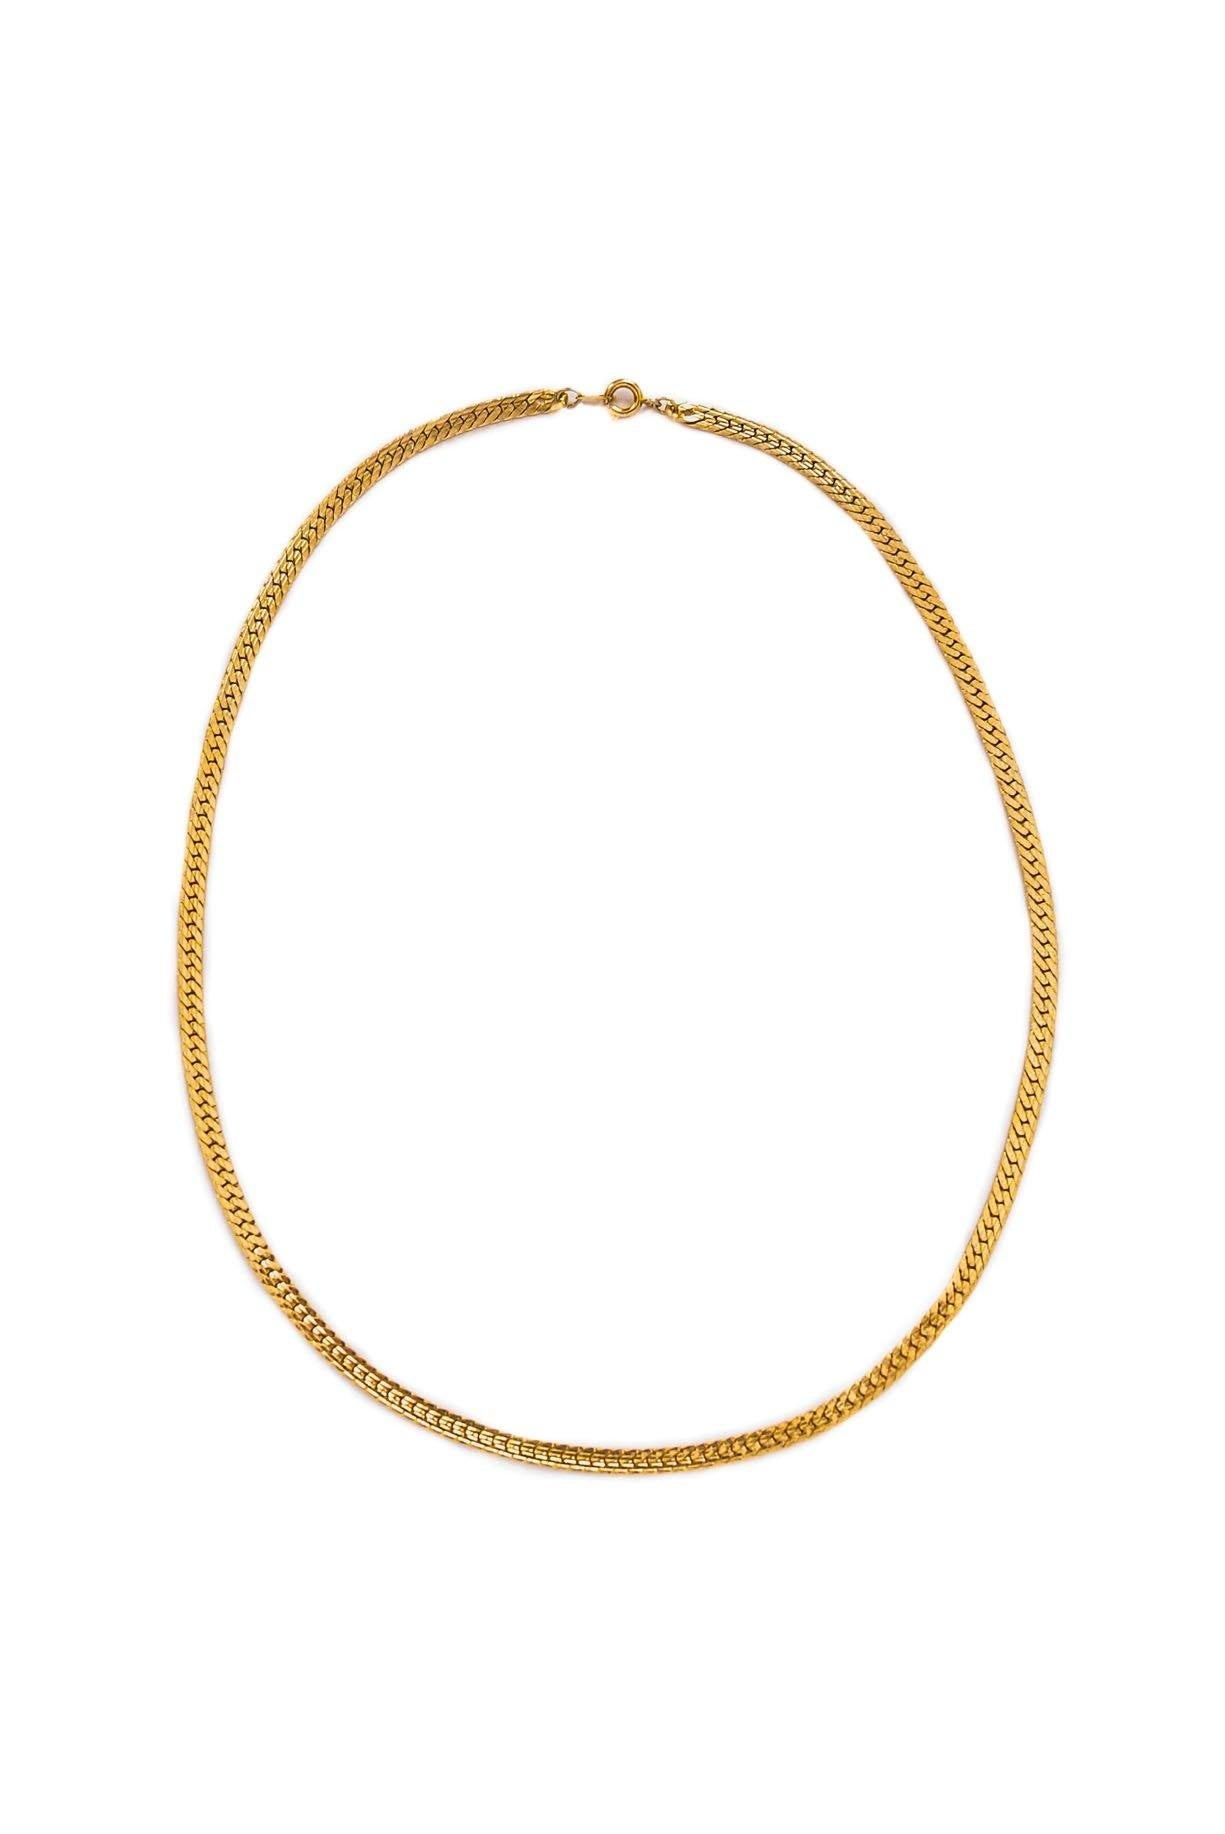 Vintage Dainty Herringbone Chain Necklace from Sweet and Spark